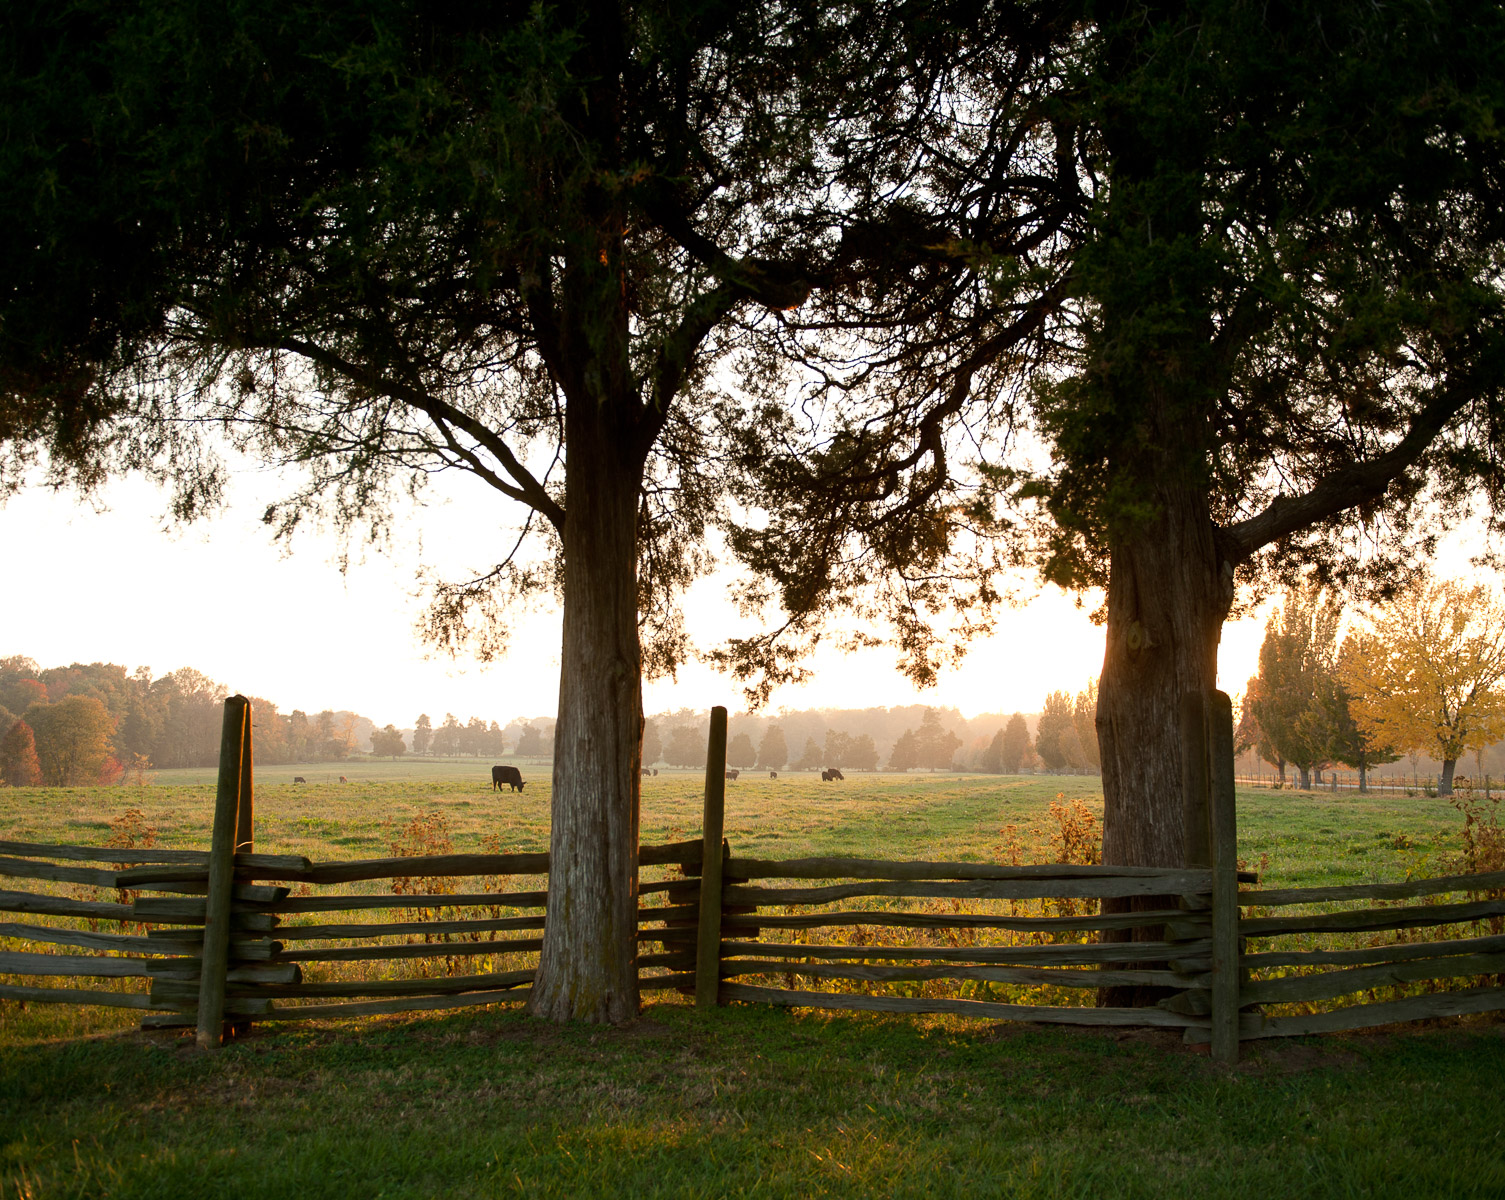 Post and rider fences are used to keep cattle in the pastures at Washington's Birthplace National Monument in Colonial, Virginia. There is a 1930's reproduction of the original house at the site, which burned down in 1792. October 25, 2012. Vanessa Vick for The New York Times